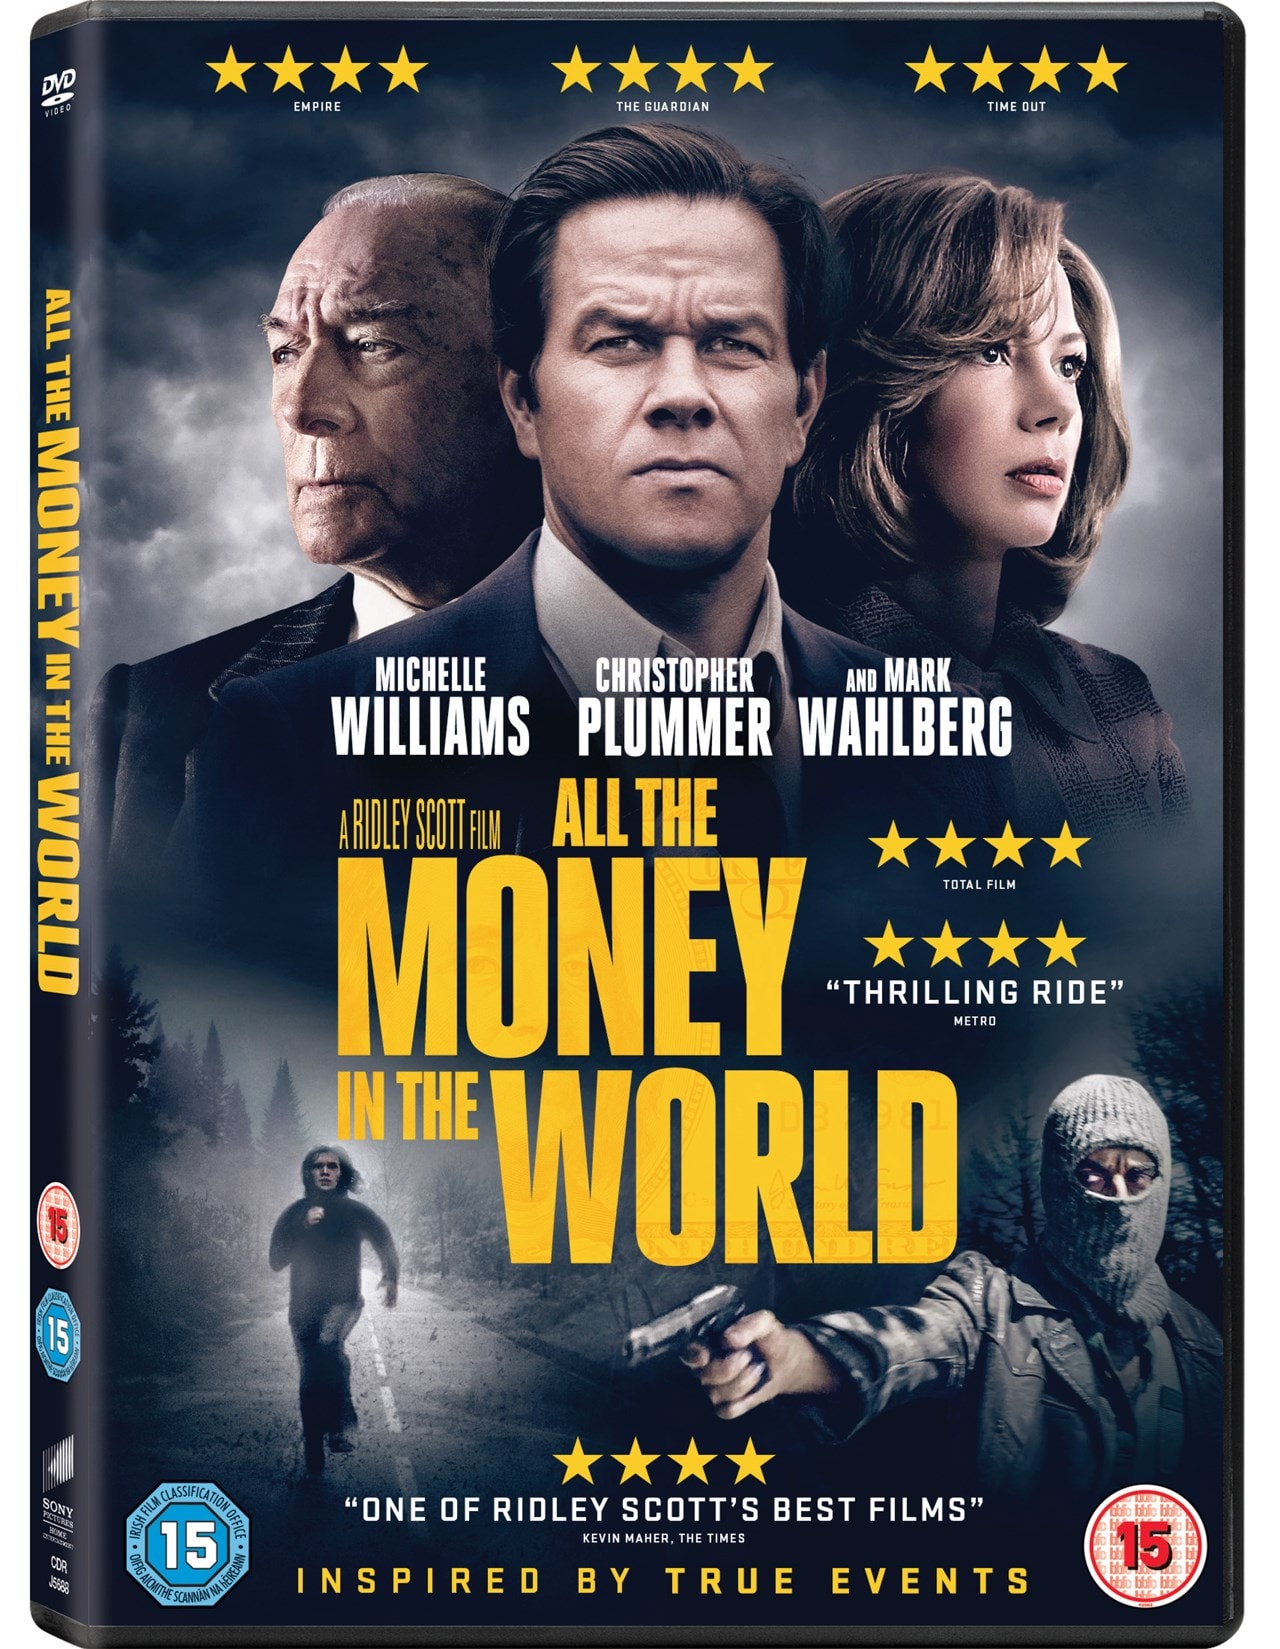 All the Money in the World - 2